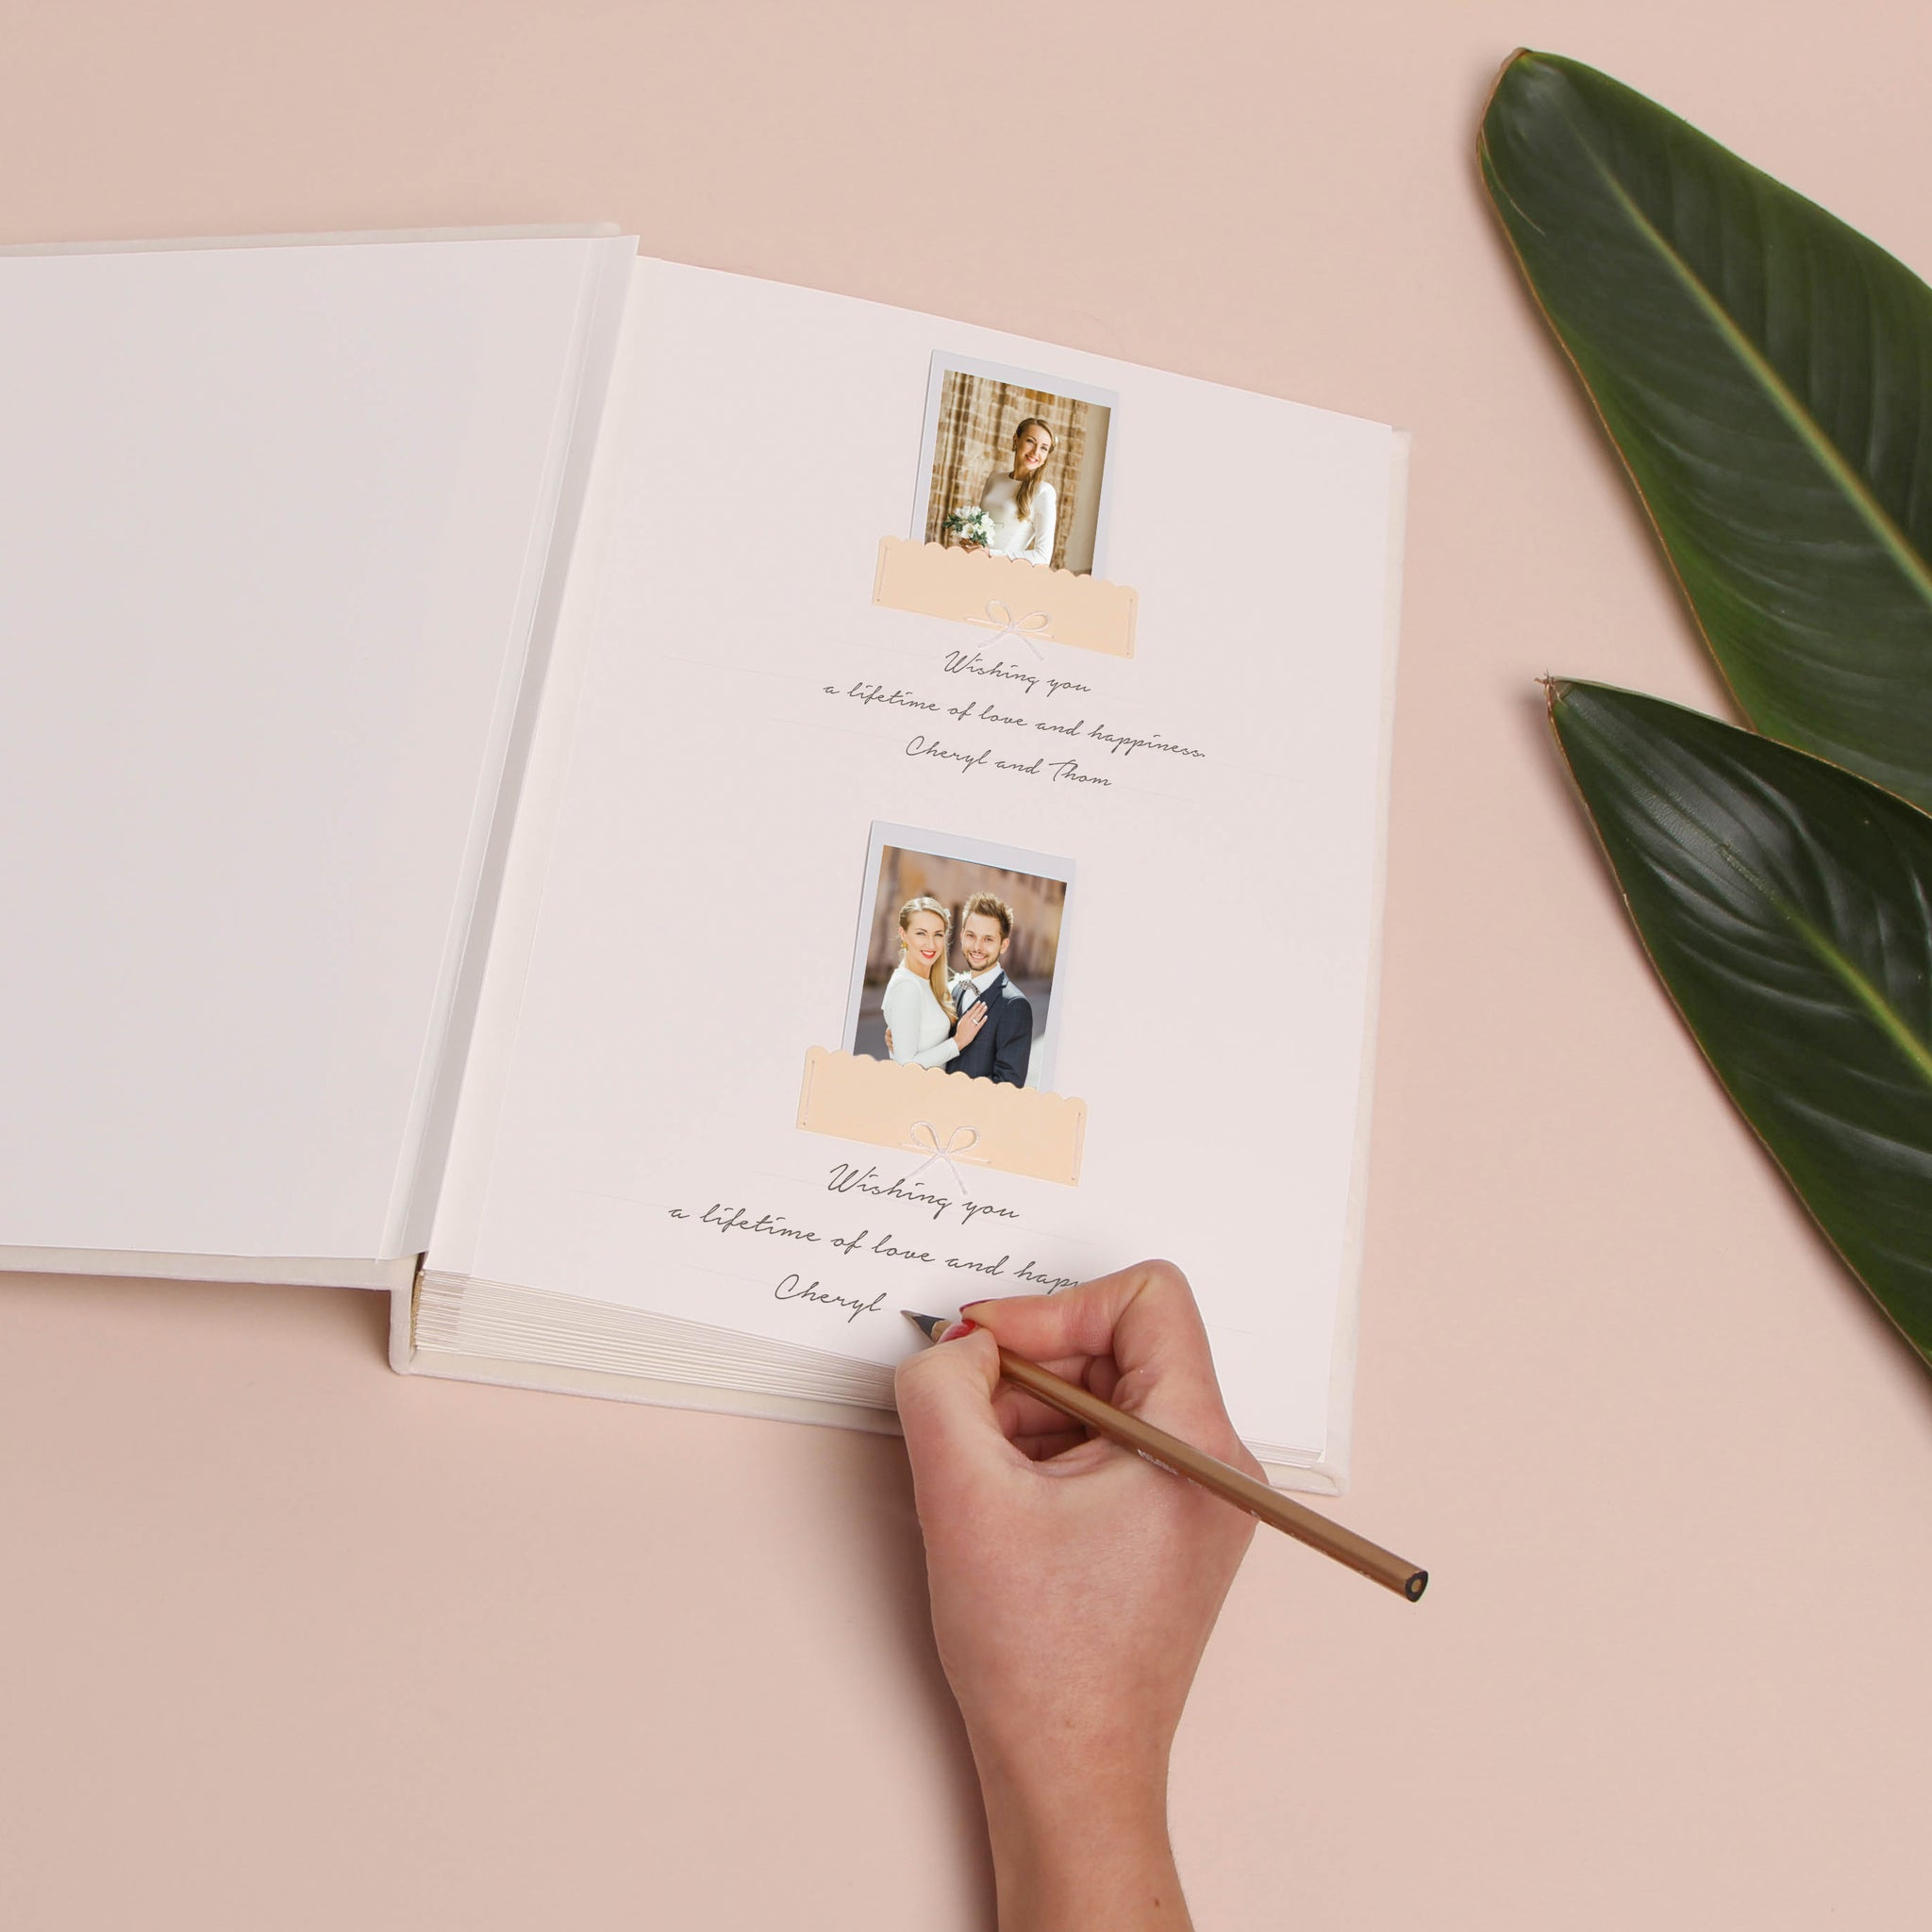 Instax Photo Guestbook Ivory Velour Love Story Rose Gold Lettering, Personalized Wedding Album, Alternative Guestbook - by Liumy - Liumy